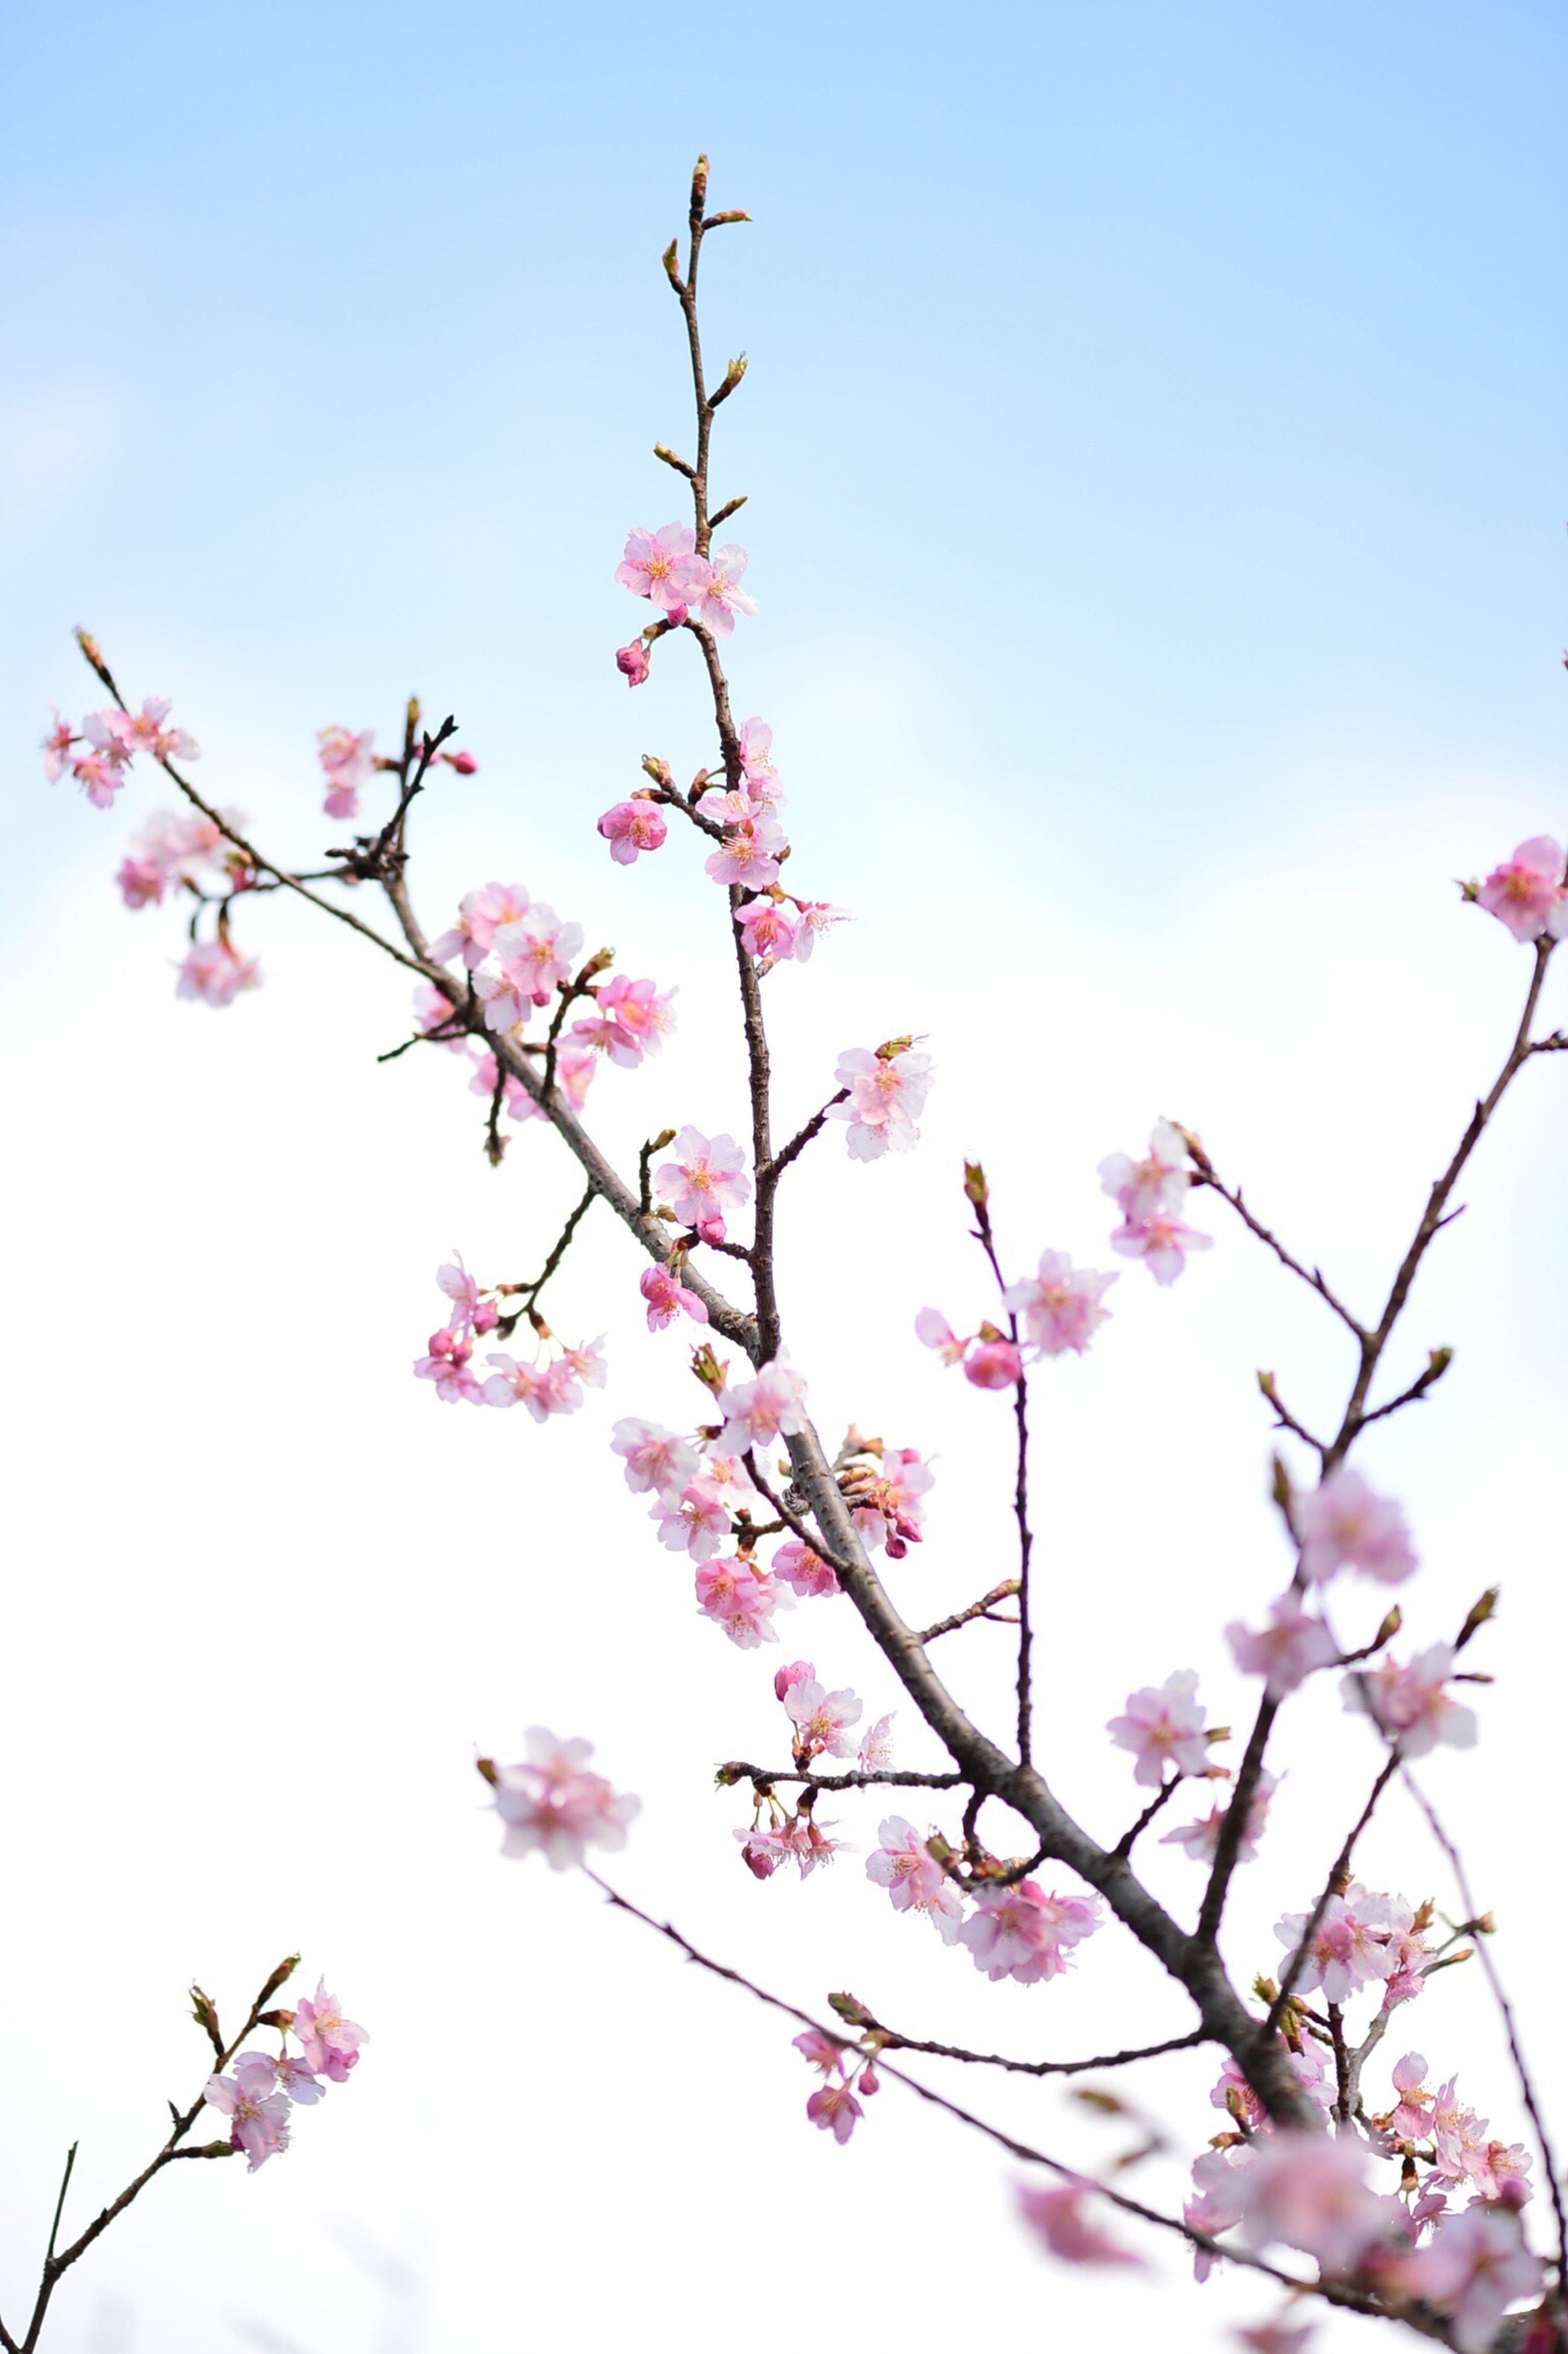 growth, nature, tree, flower, low angle view, pink color, springtime, beauty in nature, freshness, fragility, clear sky, branch, blossom, sky, no people, outdoors, cherry tree, day, cherry blossom, close-up, plum blossom